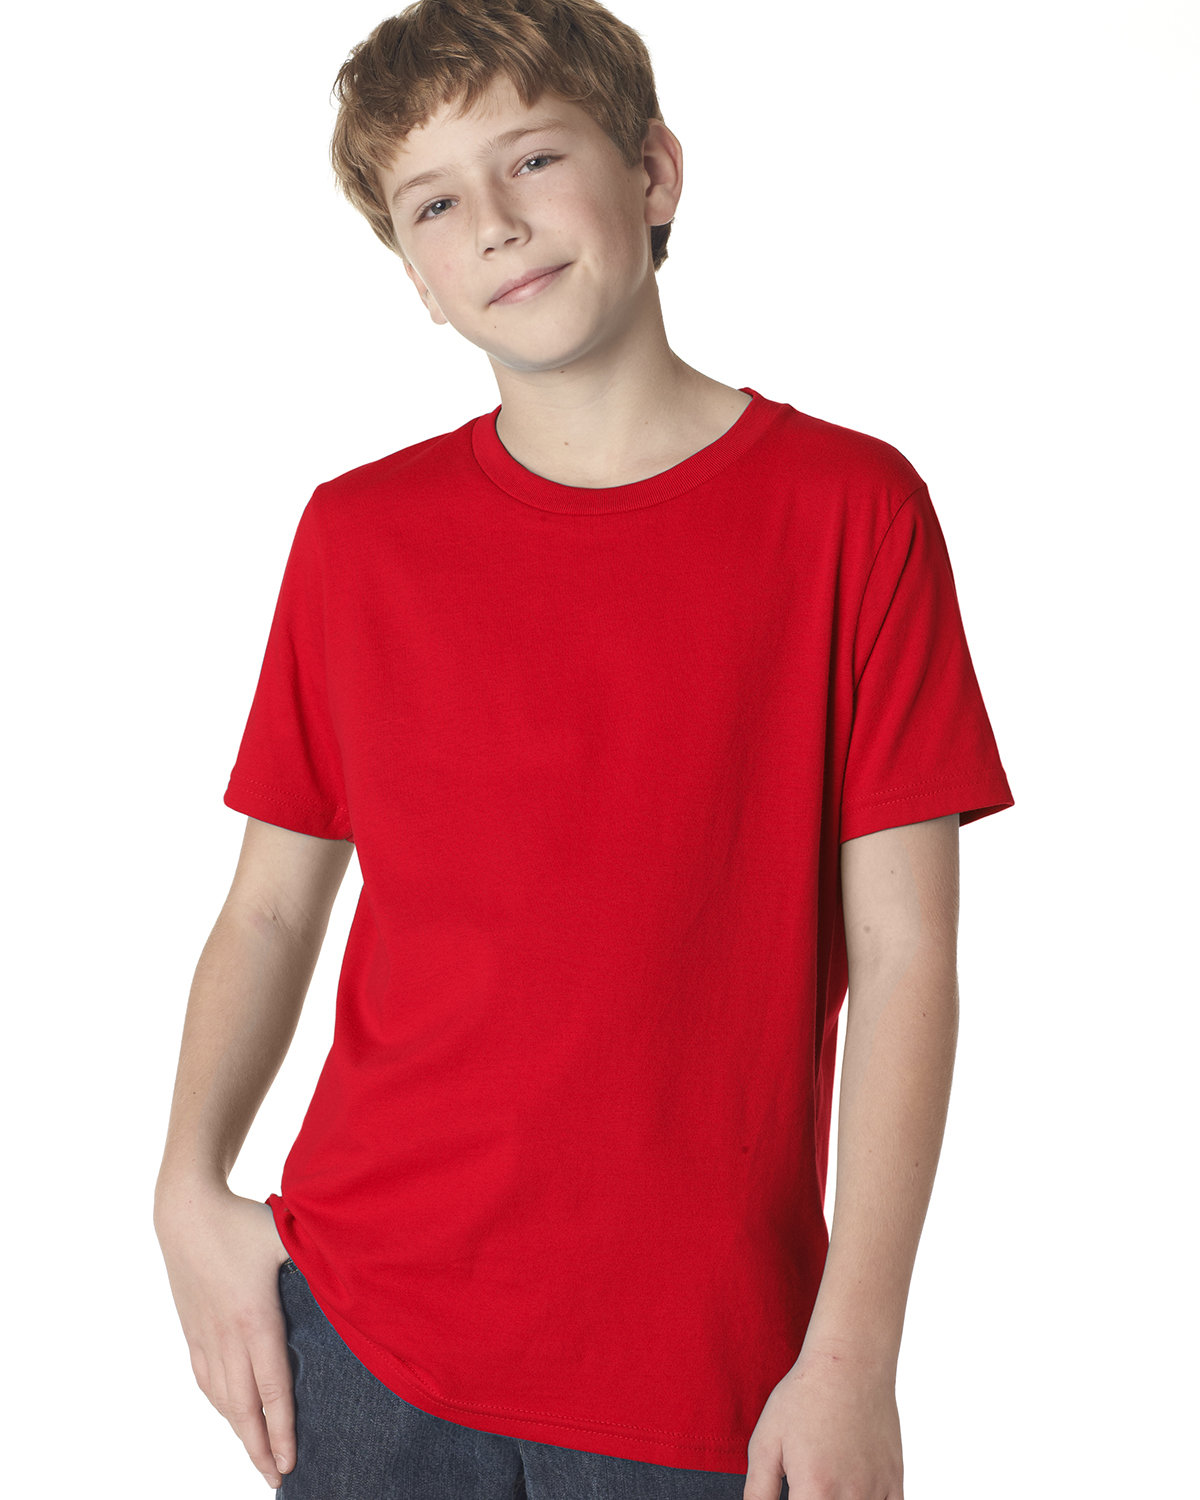 Next Level Youth Boys' Cotton Crew RED